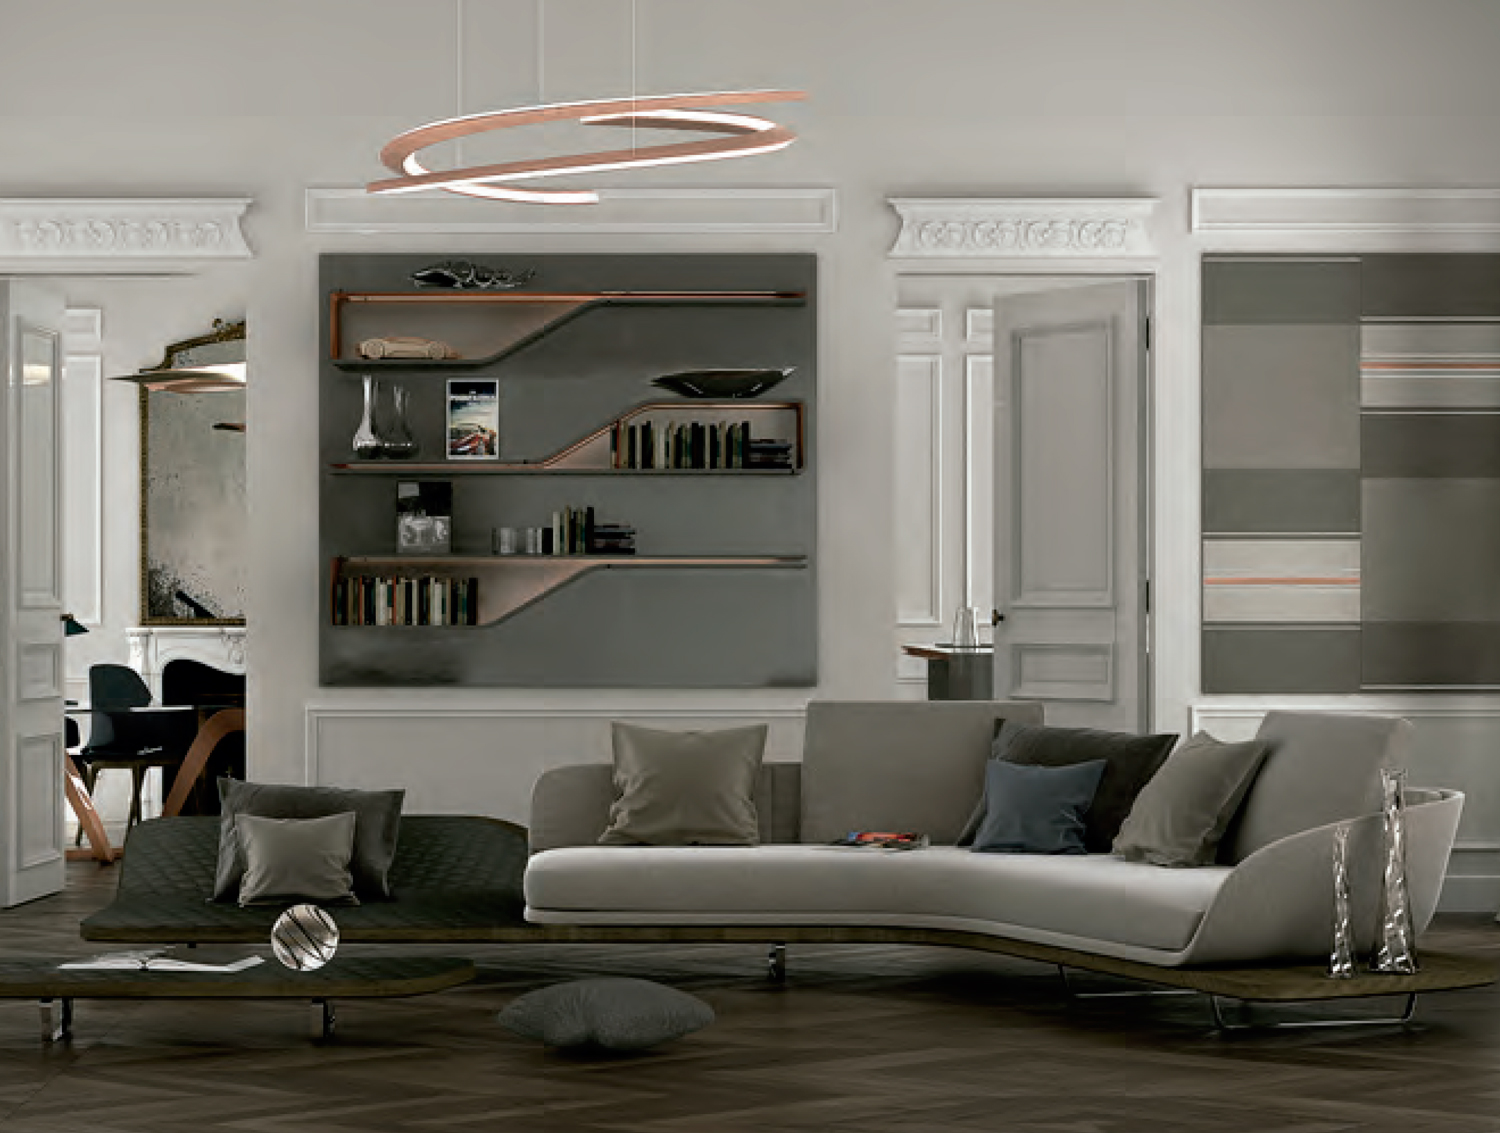 Segno luxury contemporary shelf italian designer for High end catalogs for home decor